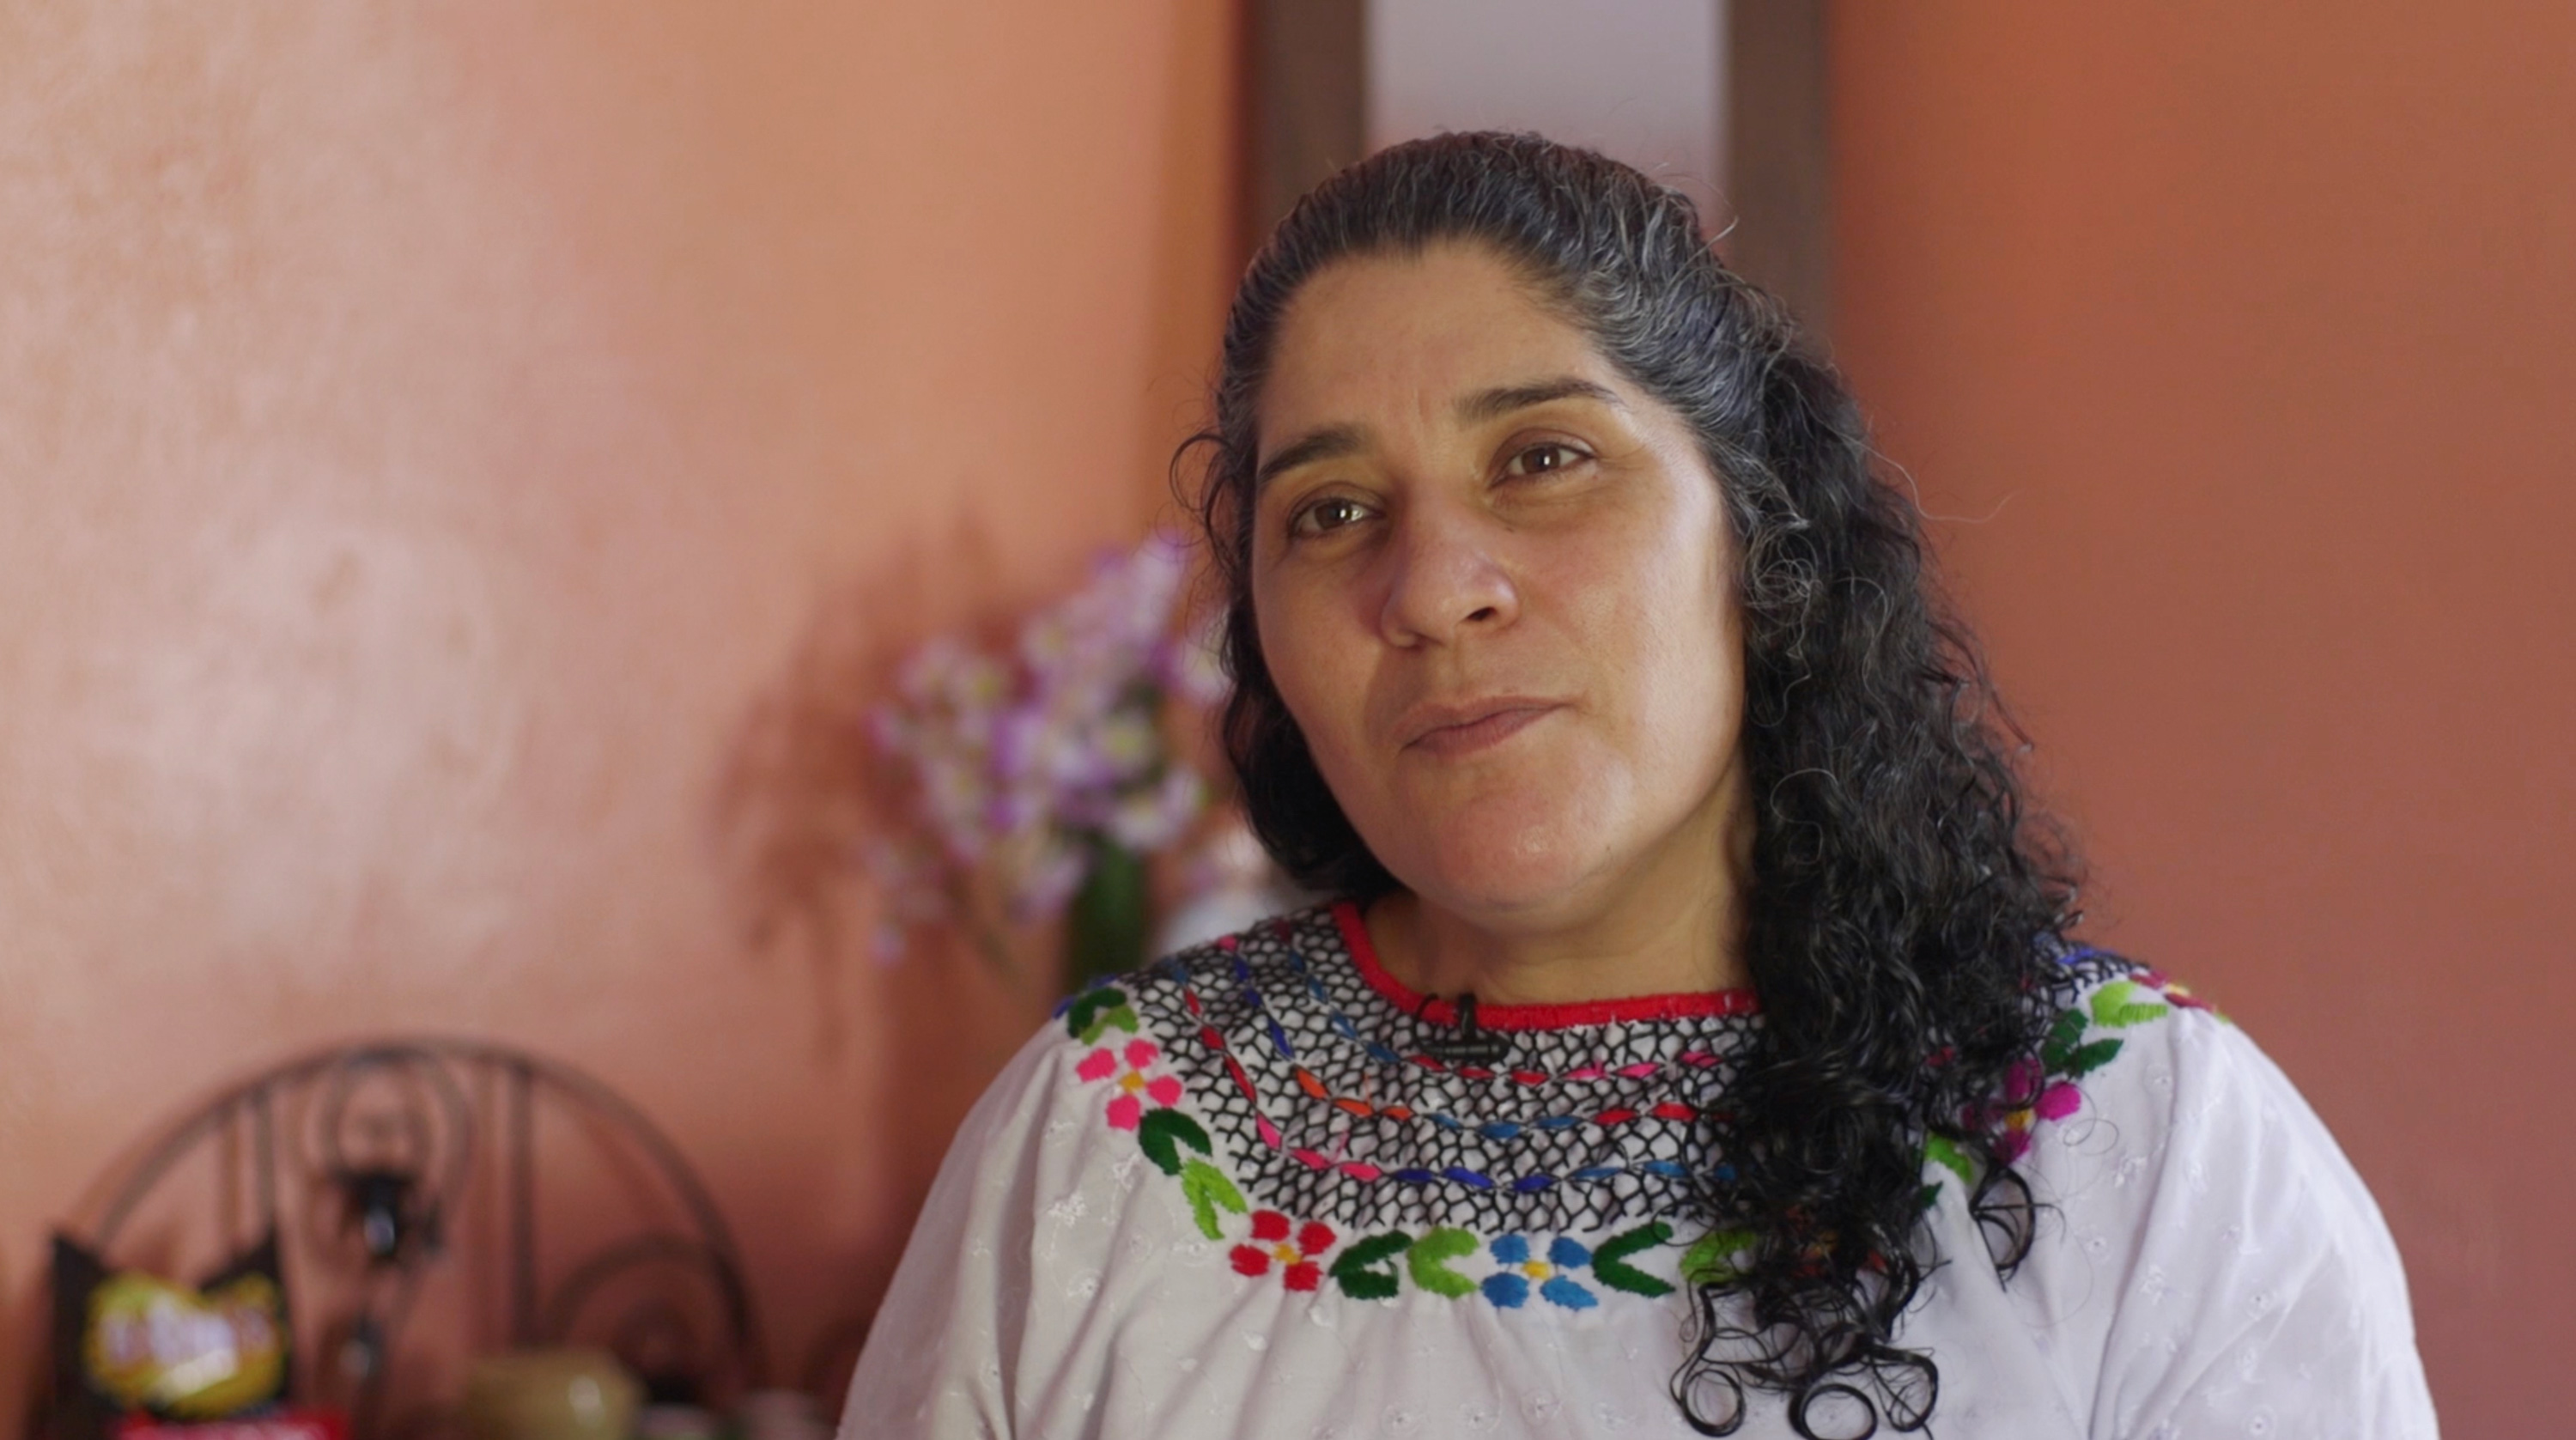 In Guatemala, Defending Land Can Be Deadly